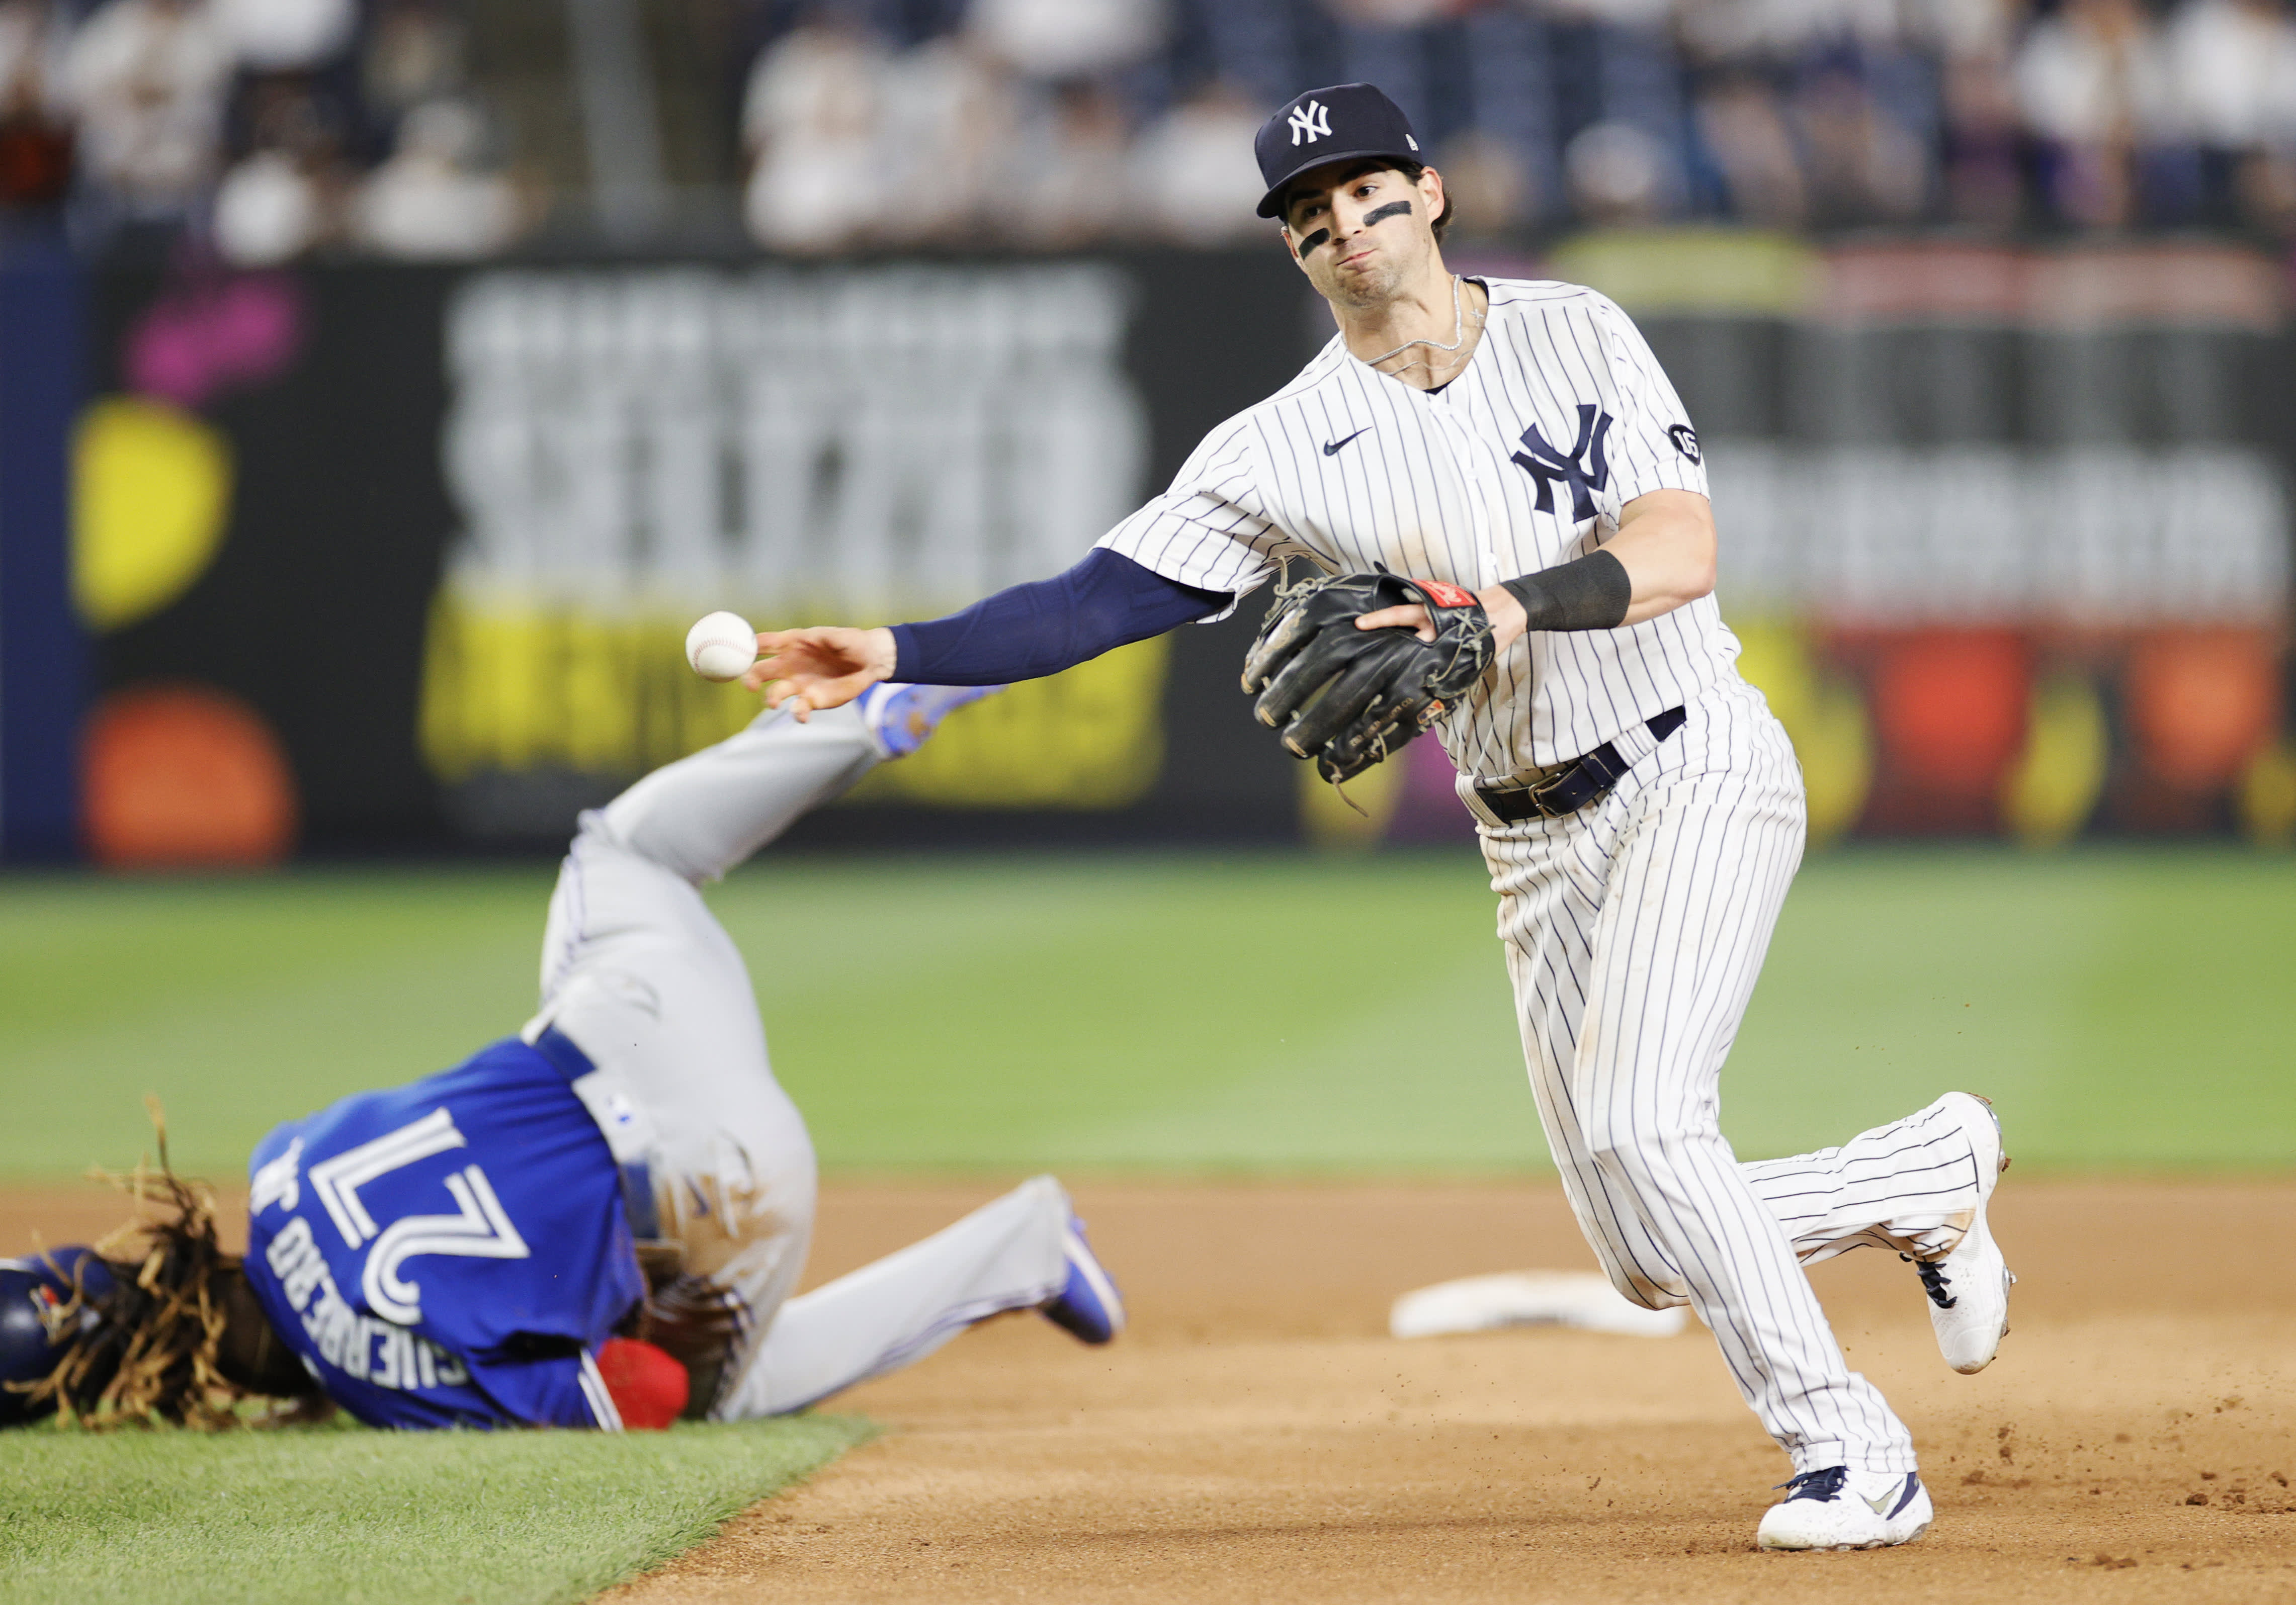 MLB launches into NFT space with help from Lou Gehrig and new company led by Fanatics